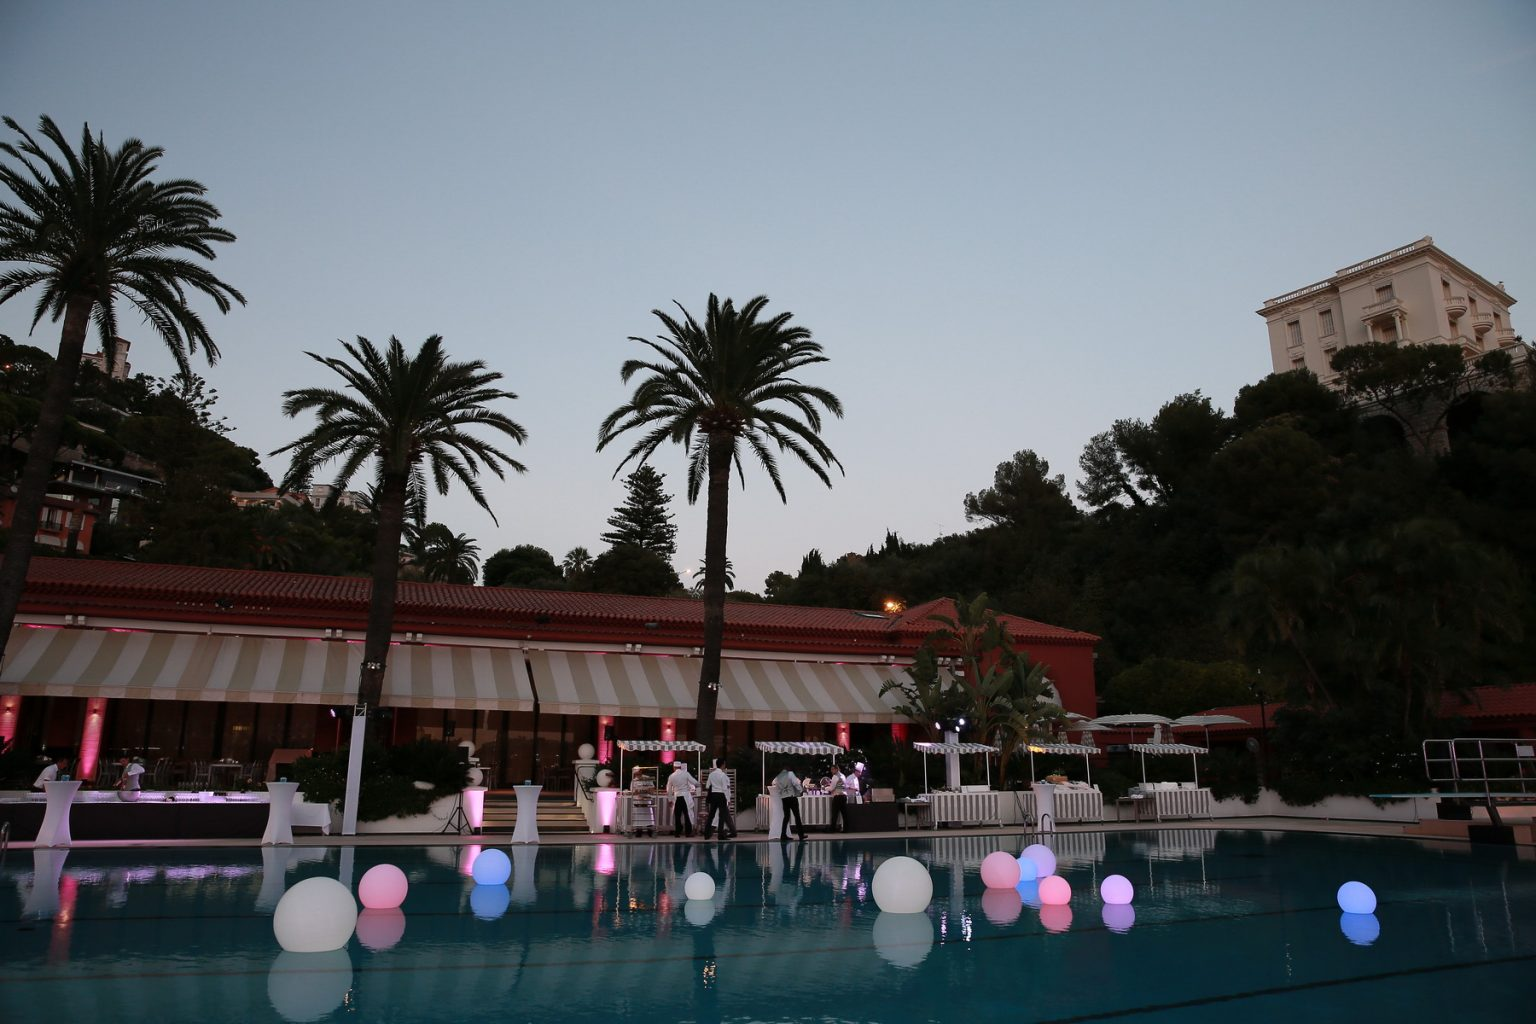 Le Deck Monte Carlo Pool Evening 6 - Le Deck Monte Carlo Pool Evening